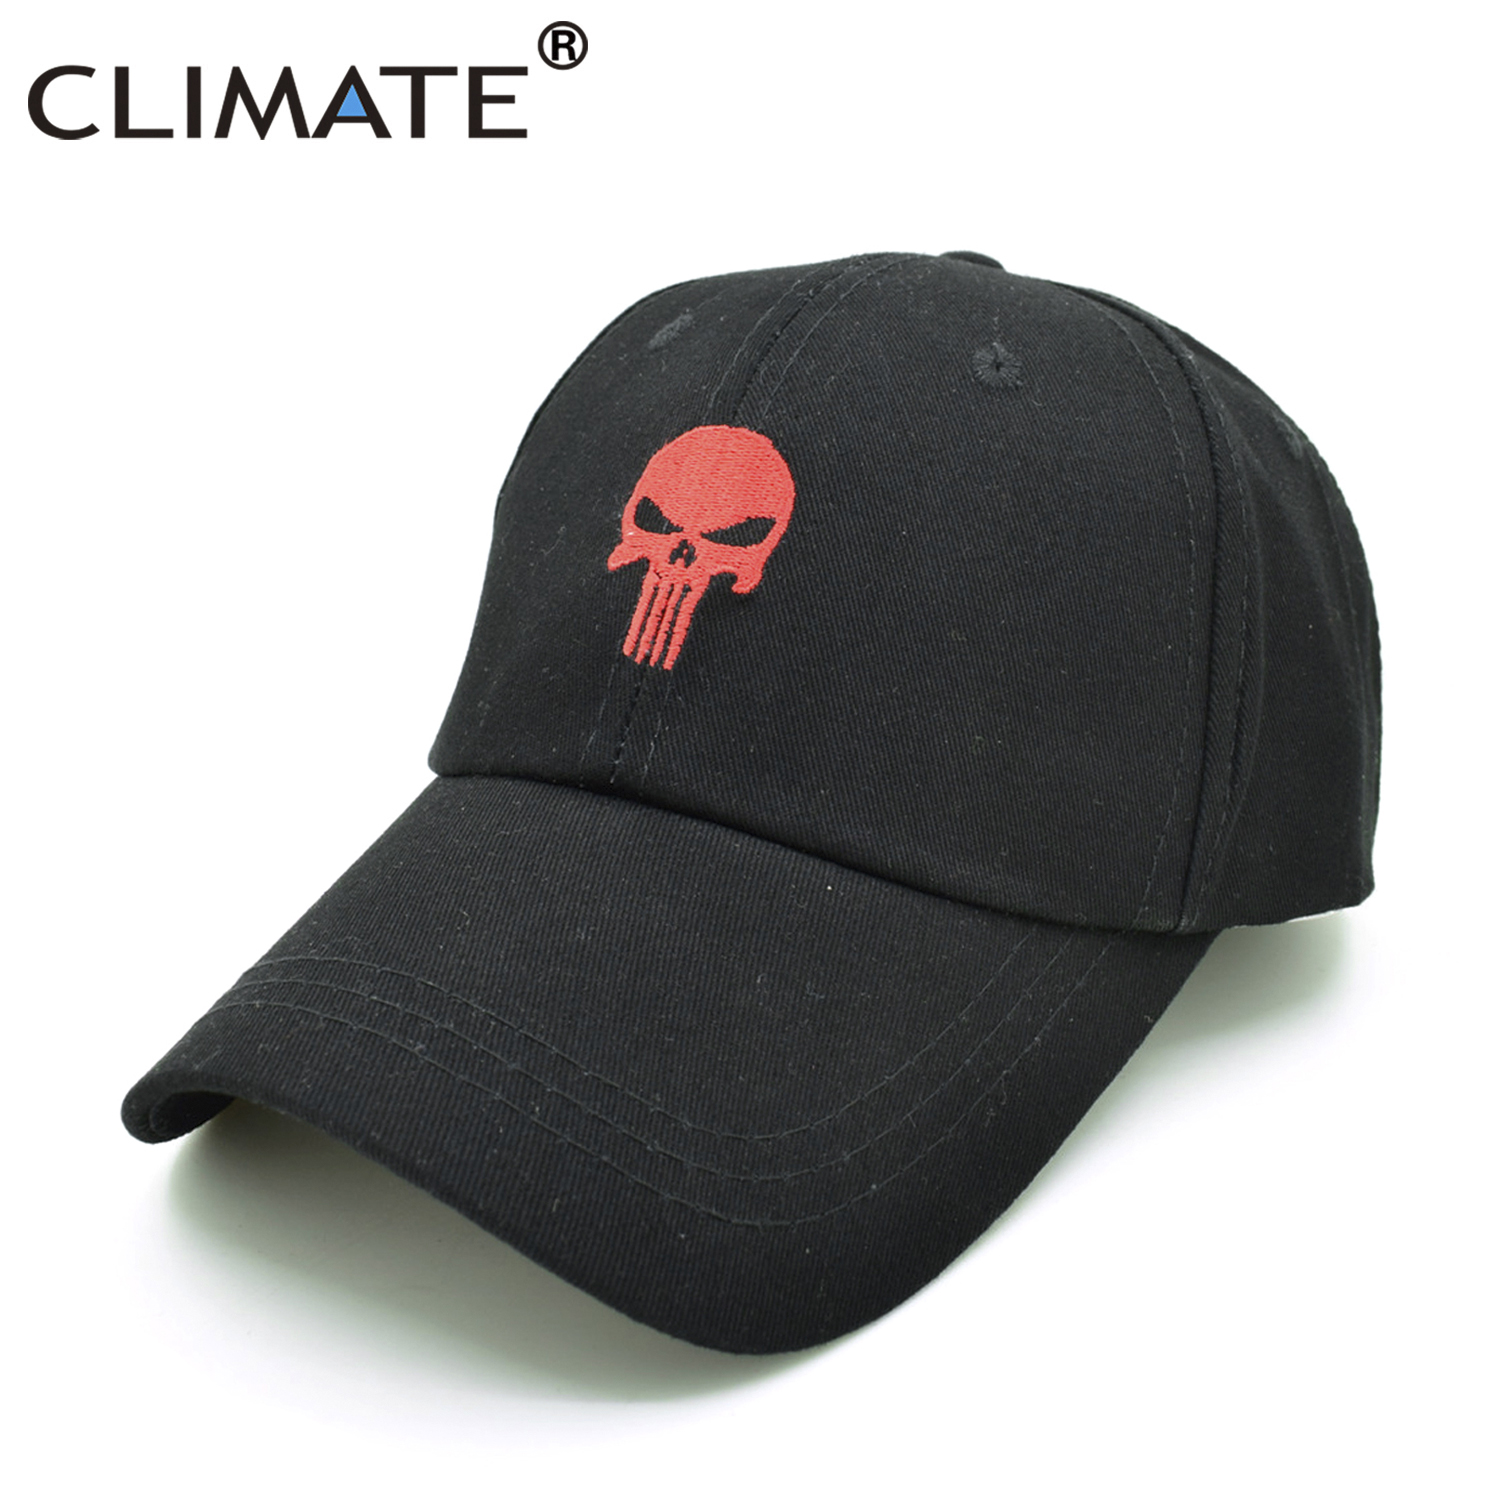 601cf58b7a4 CLIMATE New Men Cool Caps The Skull Dad Cap Hats Hot Black Cotton GYM  Sports Baseball Snapback Hats Caps Hat for Men